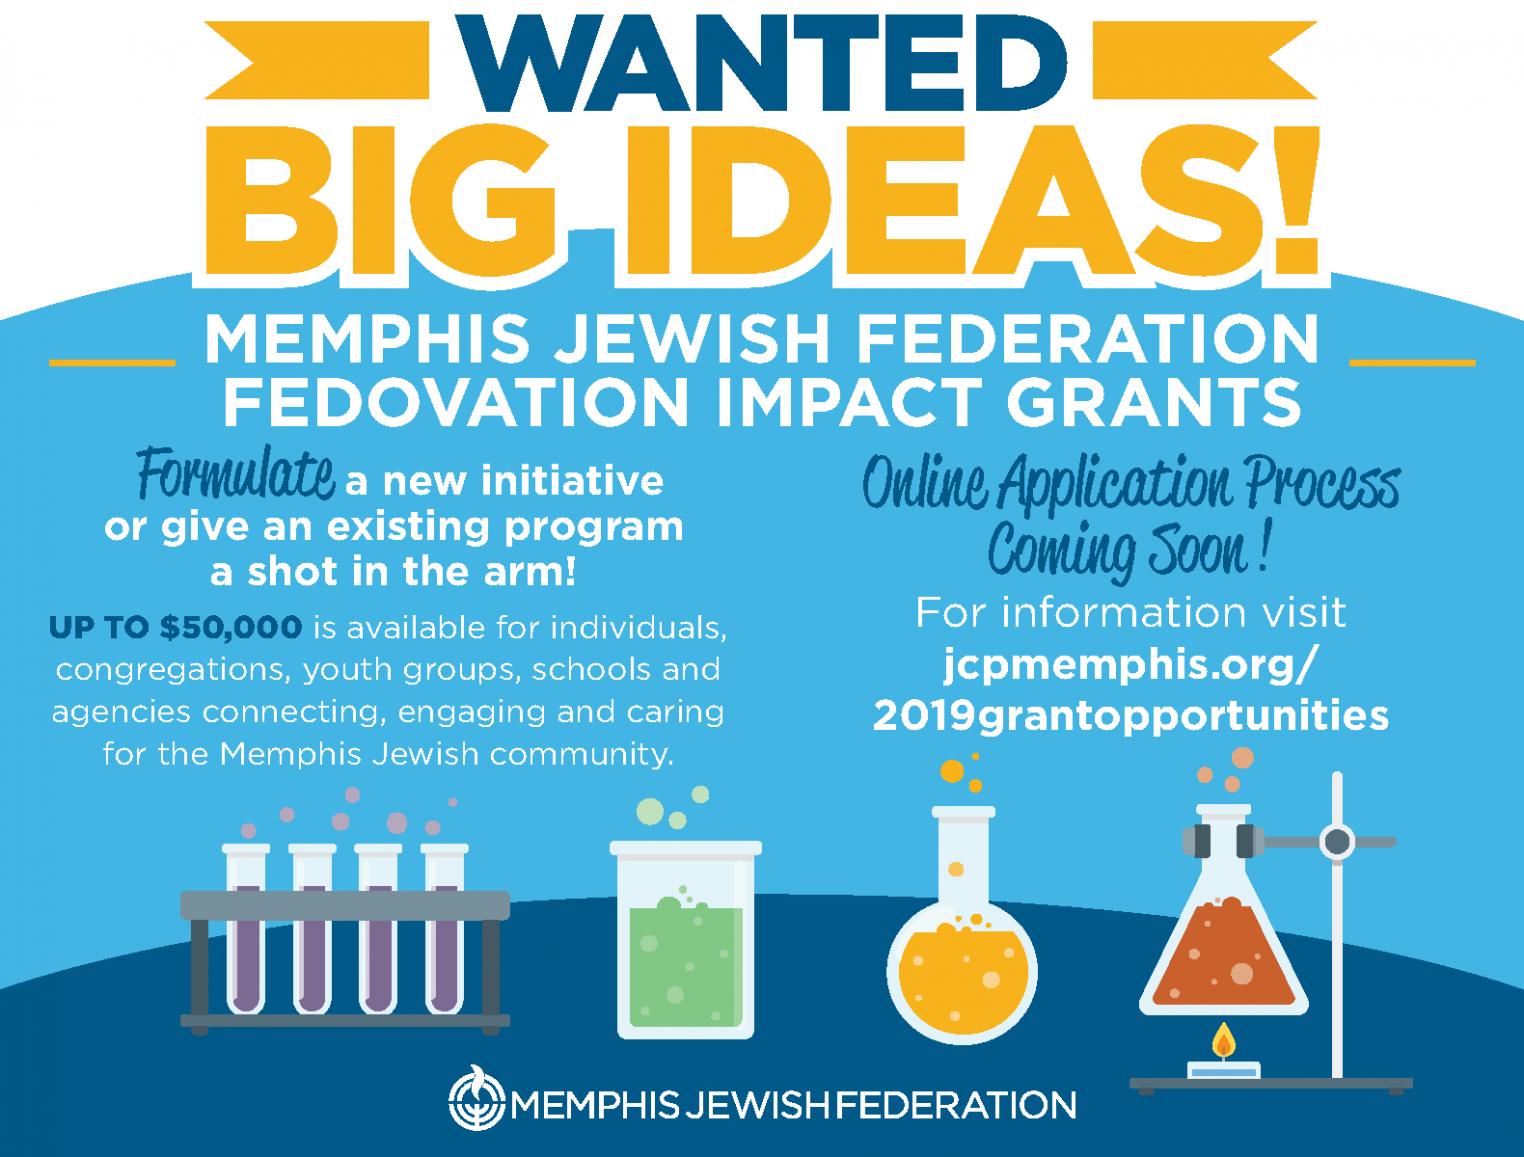 Fedovation Grants | Jewish Community Partners